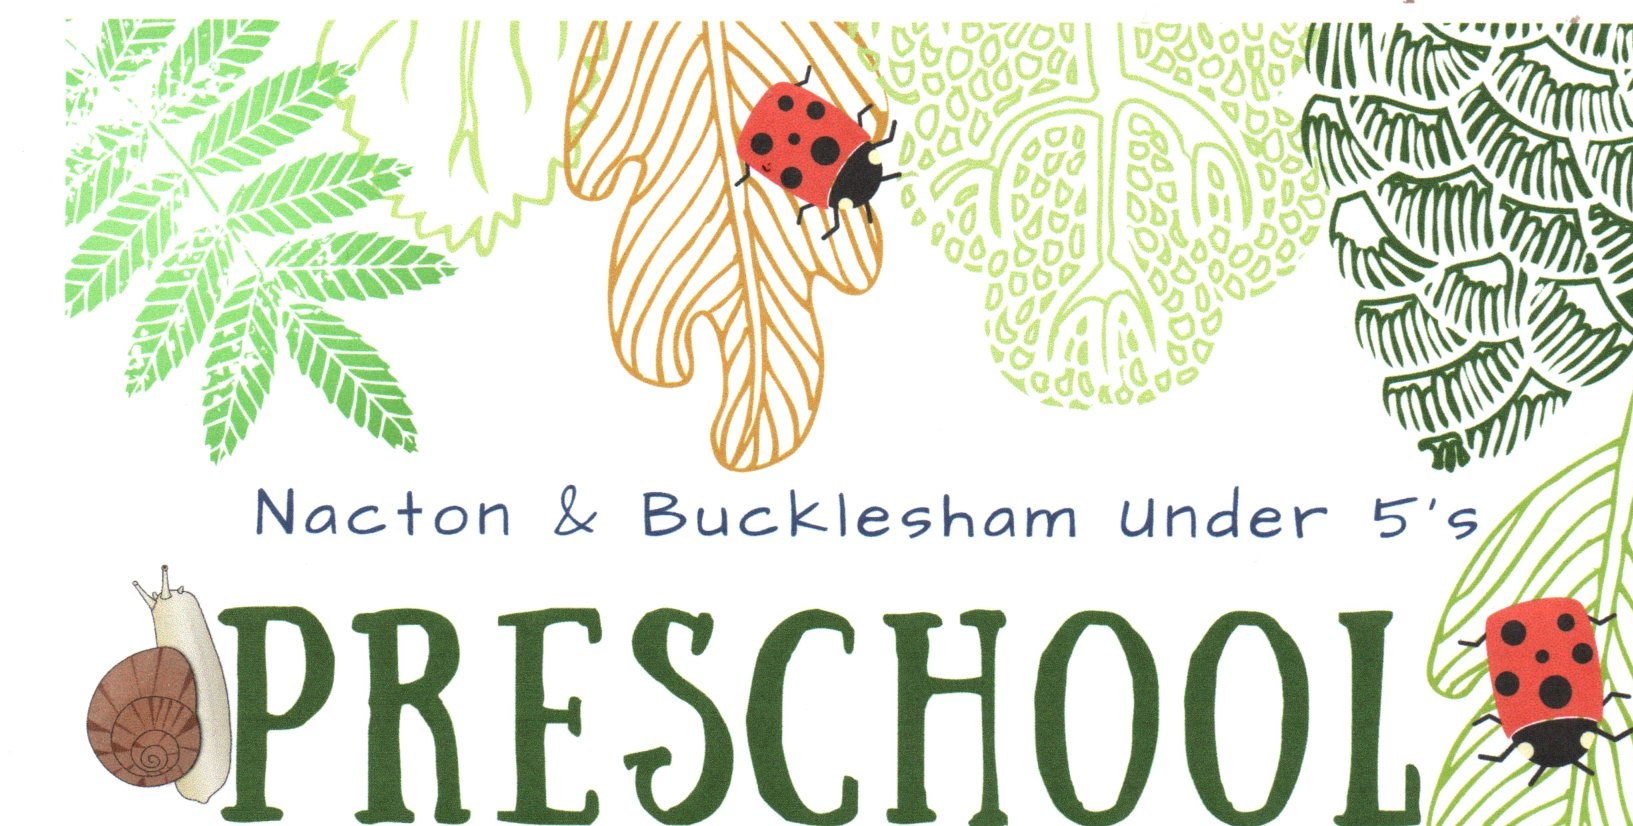 Nacton & Bucklesham Under 5's Preschool's main image